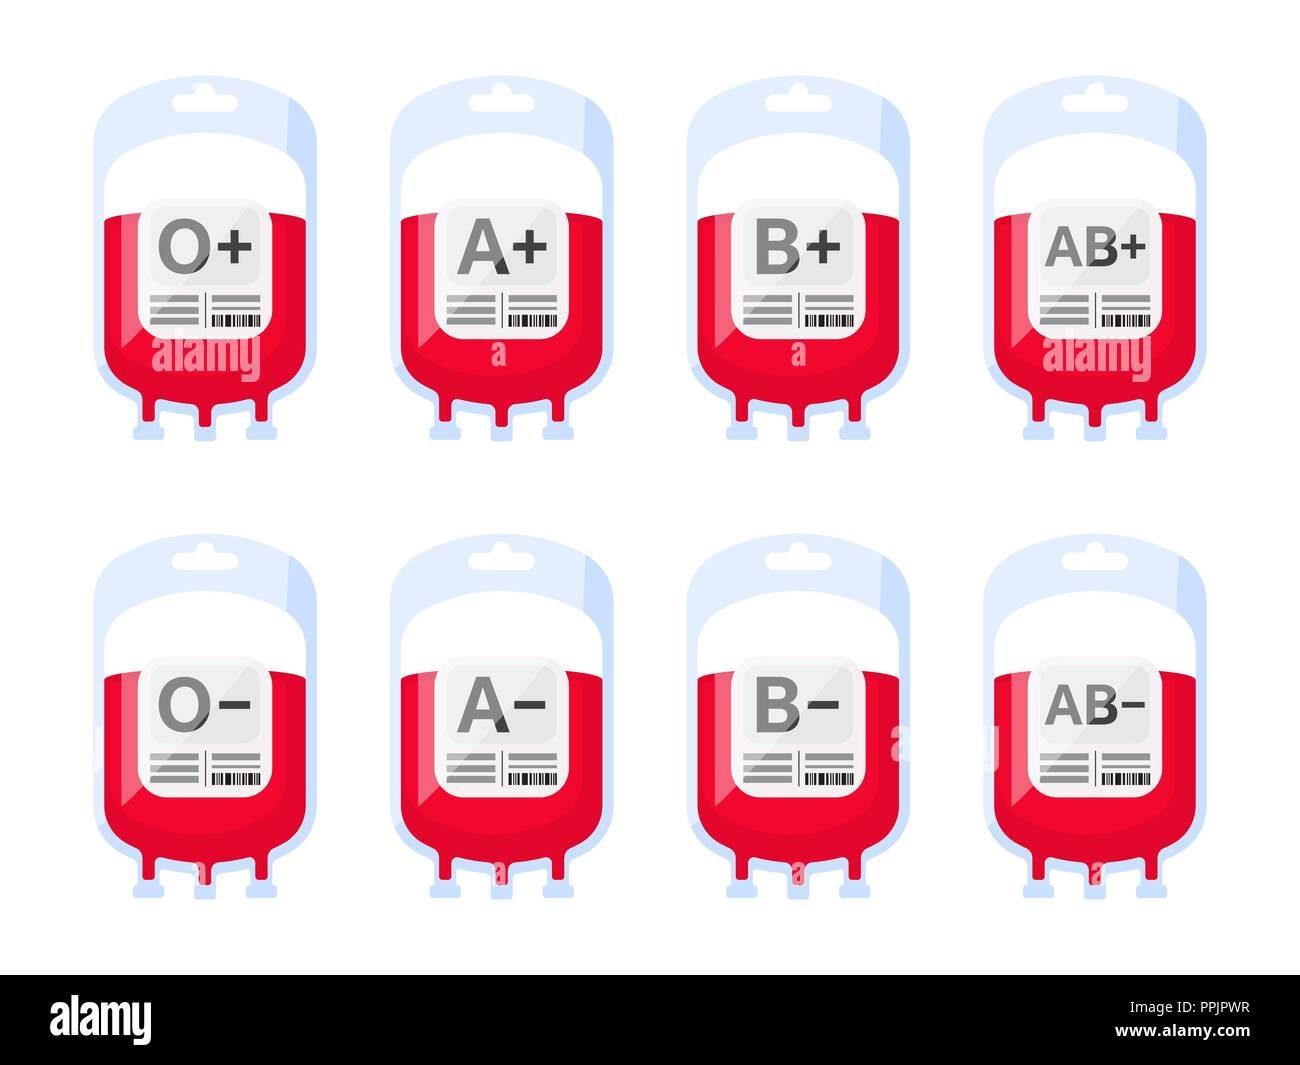 Blood bags with blood types vector illustration. Blood group vector icons isolated on white background. Blood donation vector illustration. - Stock Image